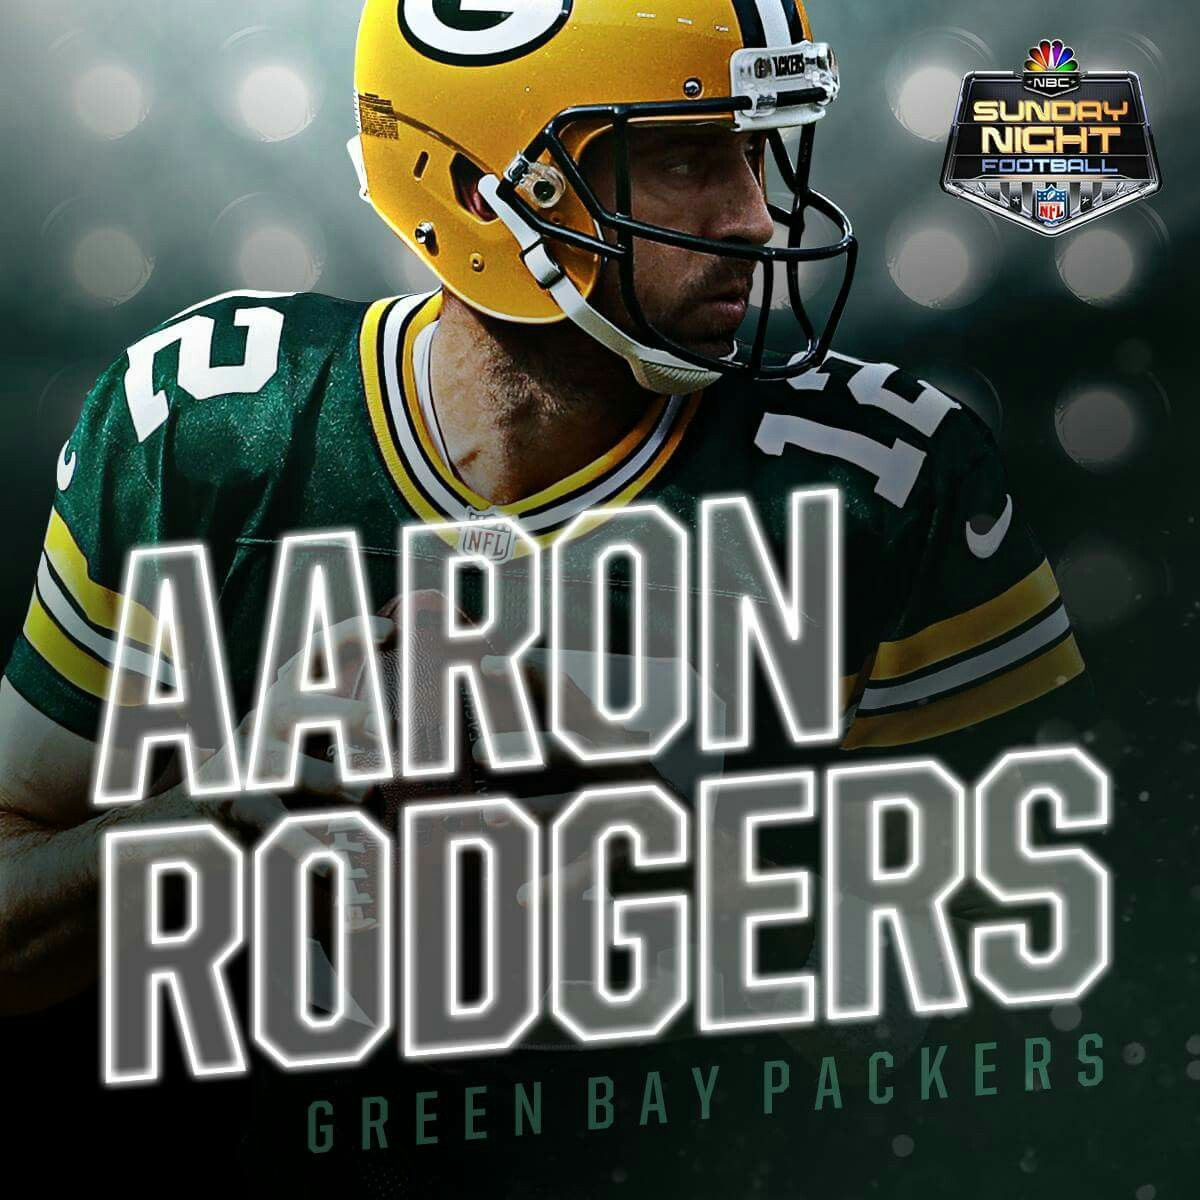 Go Pack Go Green Bay Packers Aaron Rodgers Rodgers Green Bay